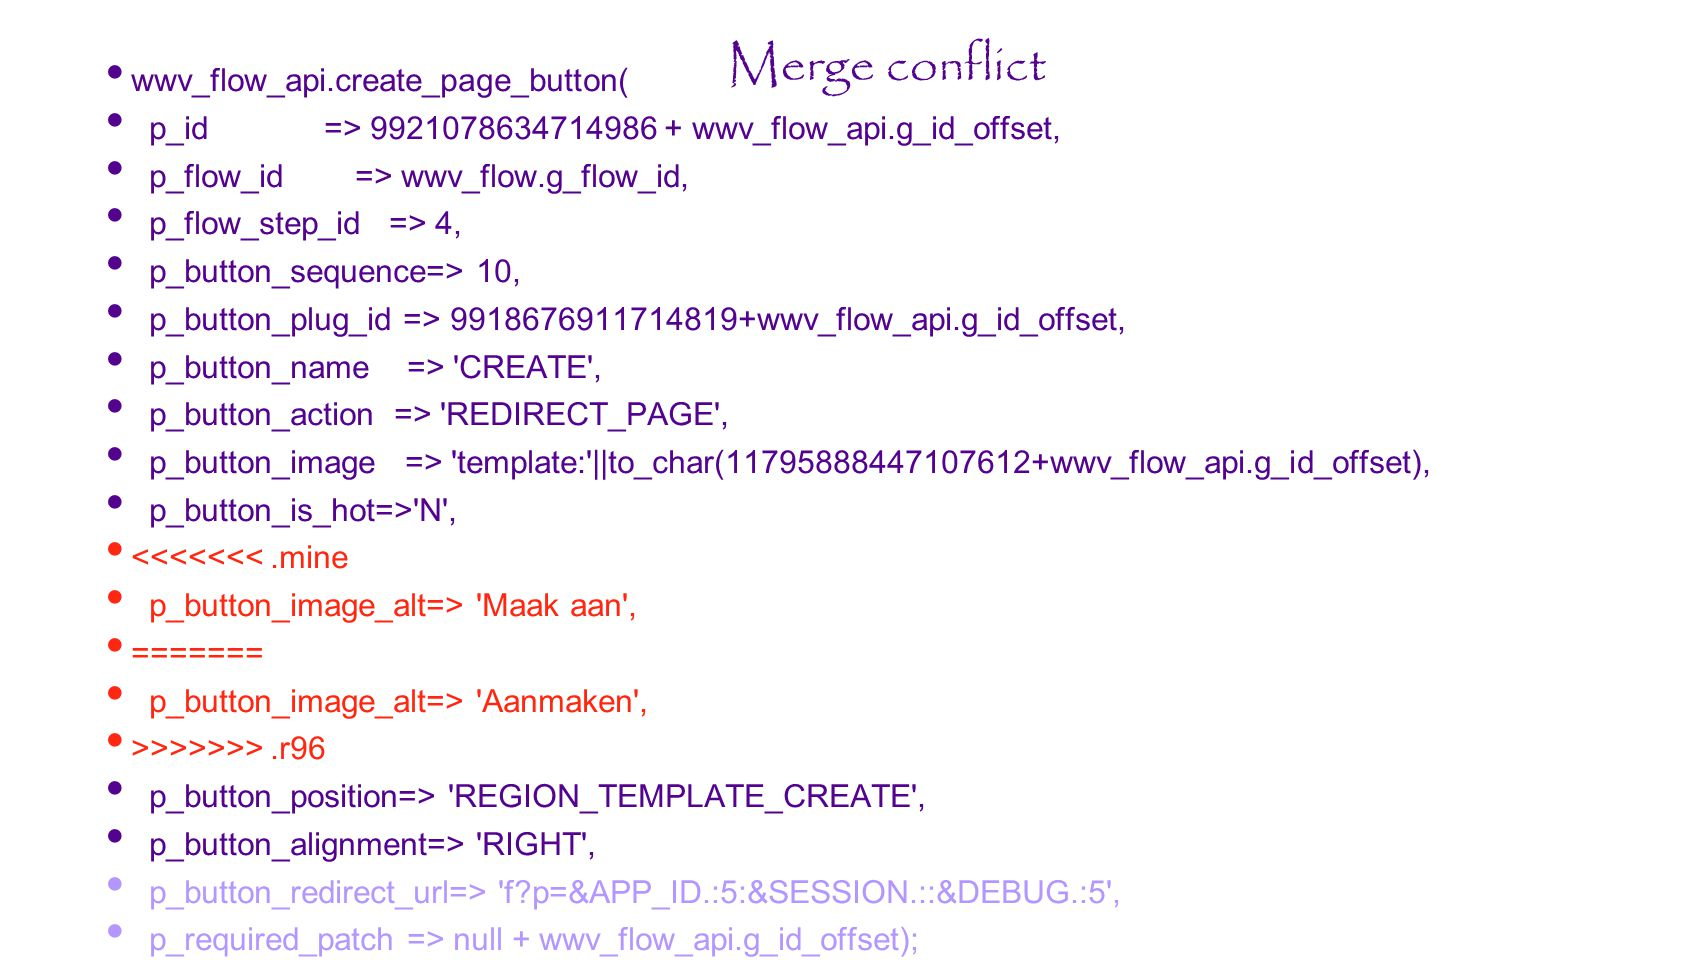 Merge conflict wwv_flow_api.create_page_button(